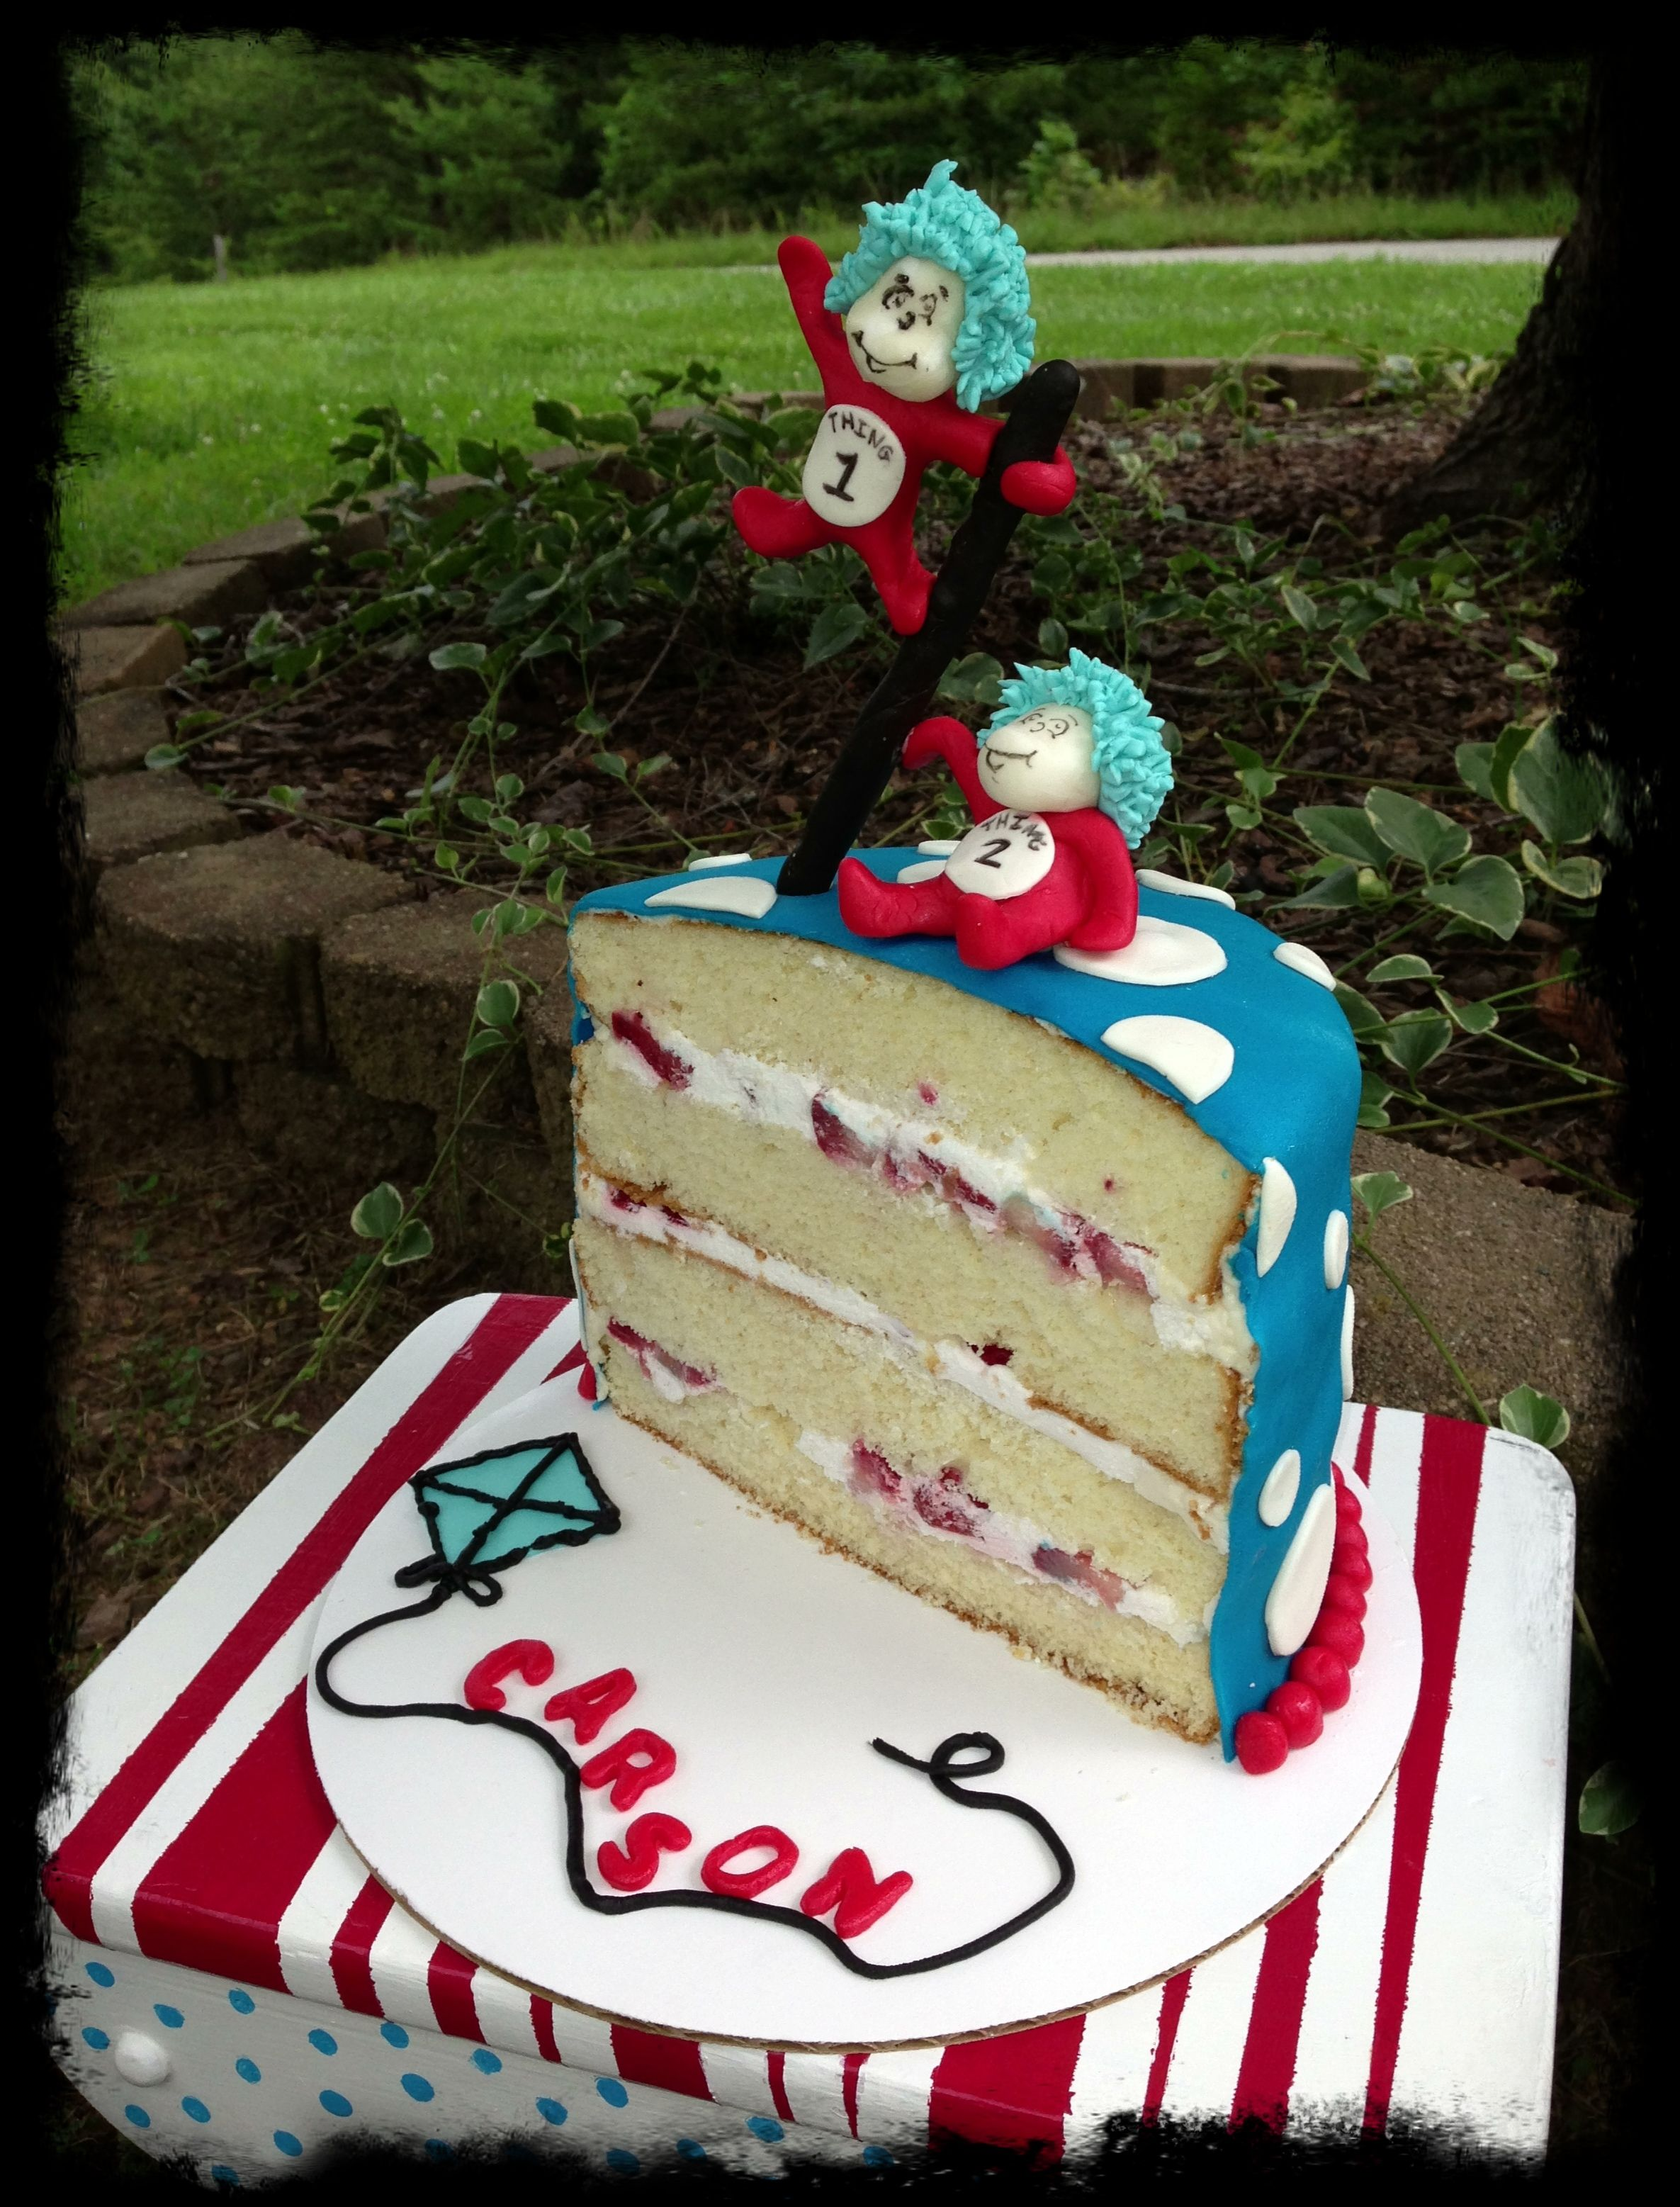 My Baby Boys 1 2 Birthday Cake Dr Seuss Half With A Thing And Topper